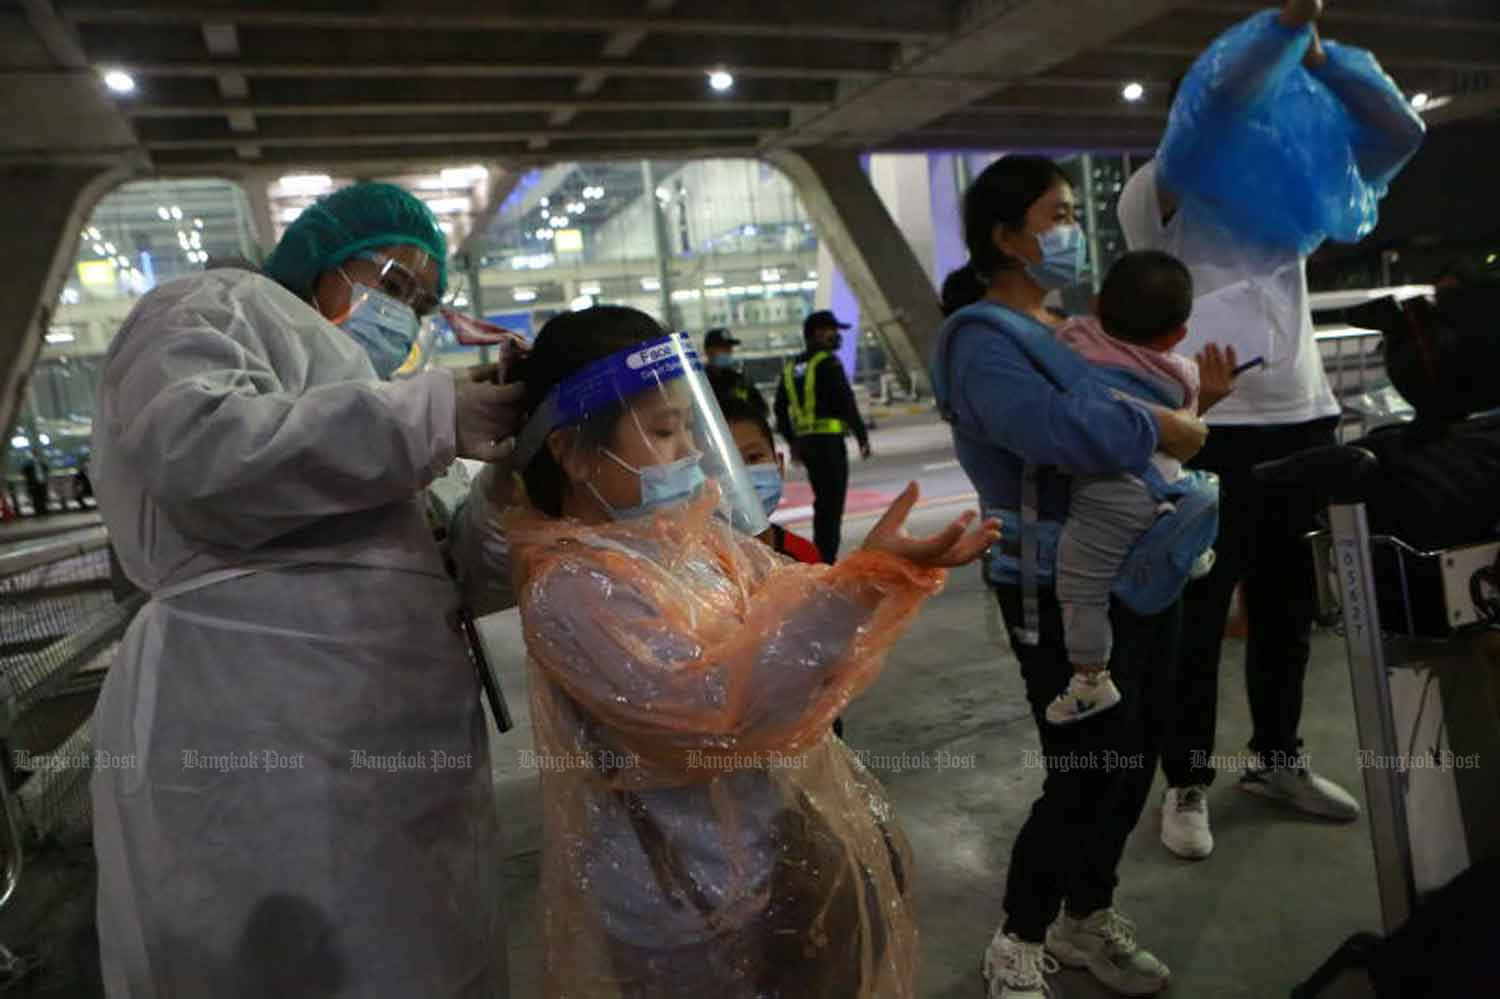 Chinese tourists arrive at Suvarnabhumi airport in Samut Prakan province on Tuesday. (Photo by Somchai Poomlard)